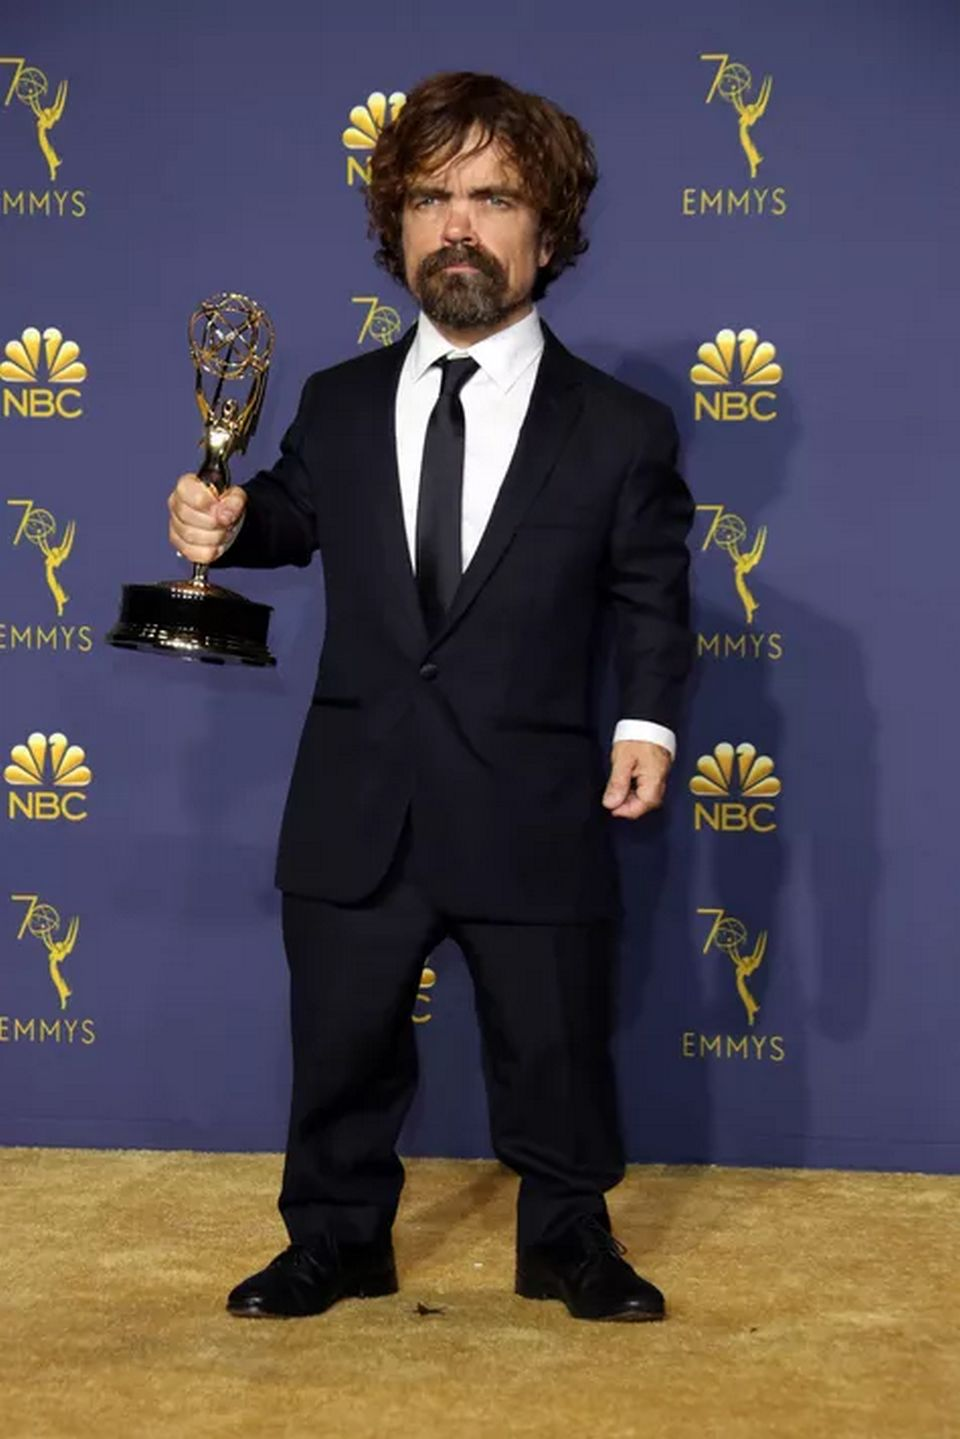 Emmy Awards 2018 winners: Game of Thrones actor Peter Dinklage took home trophy of the best 'Supporting Actor in a Drama Series'.